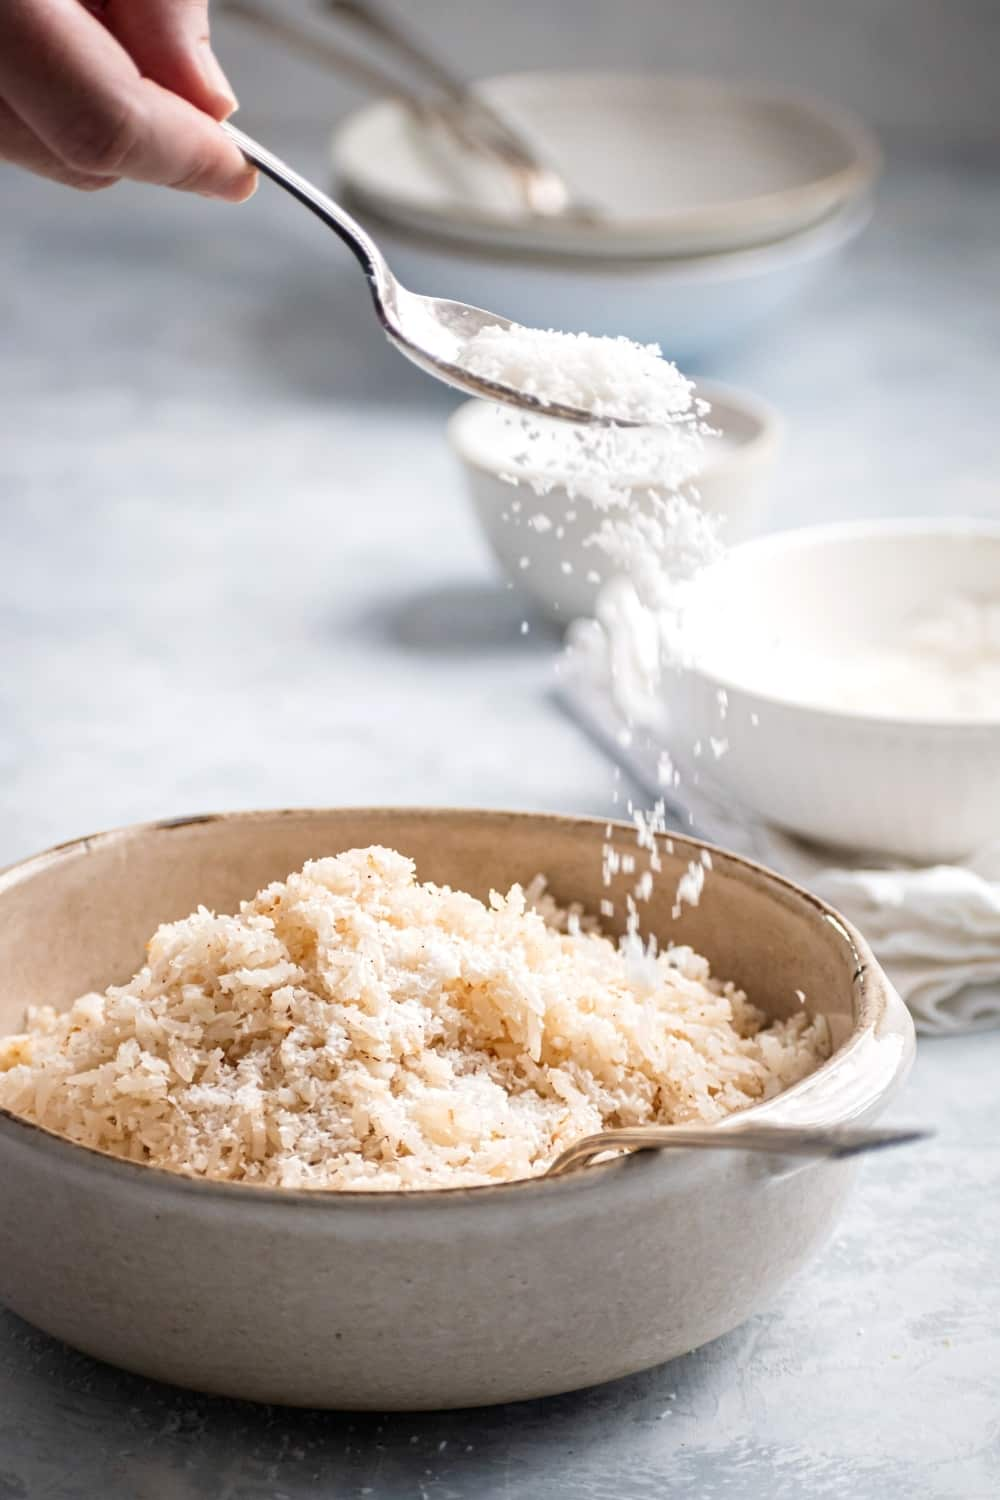 A white bowl with coconut rice in it. A hand is holding a spoon sprinkling shredded coconut on top of the rice.